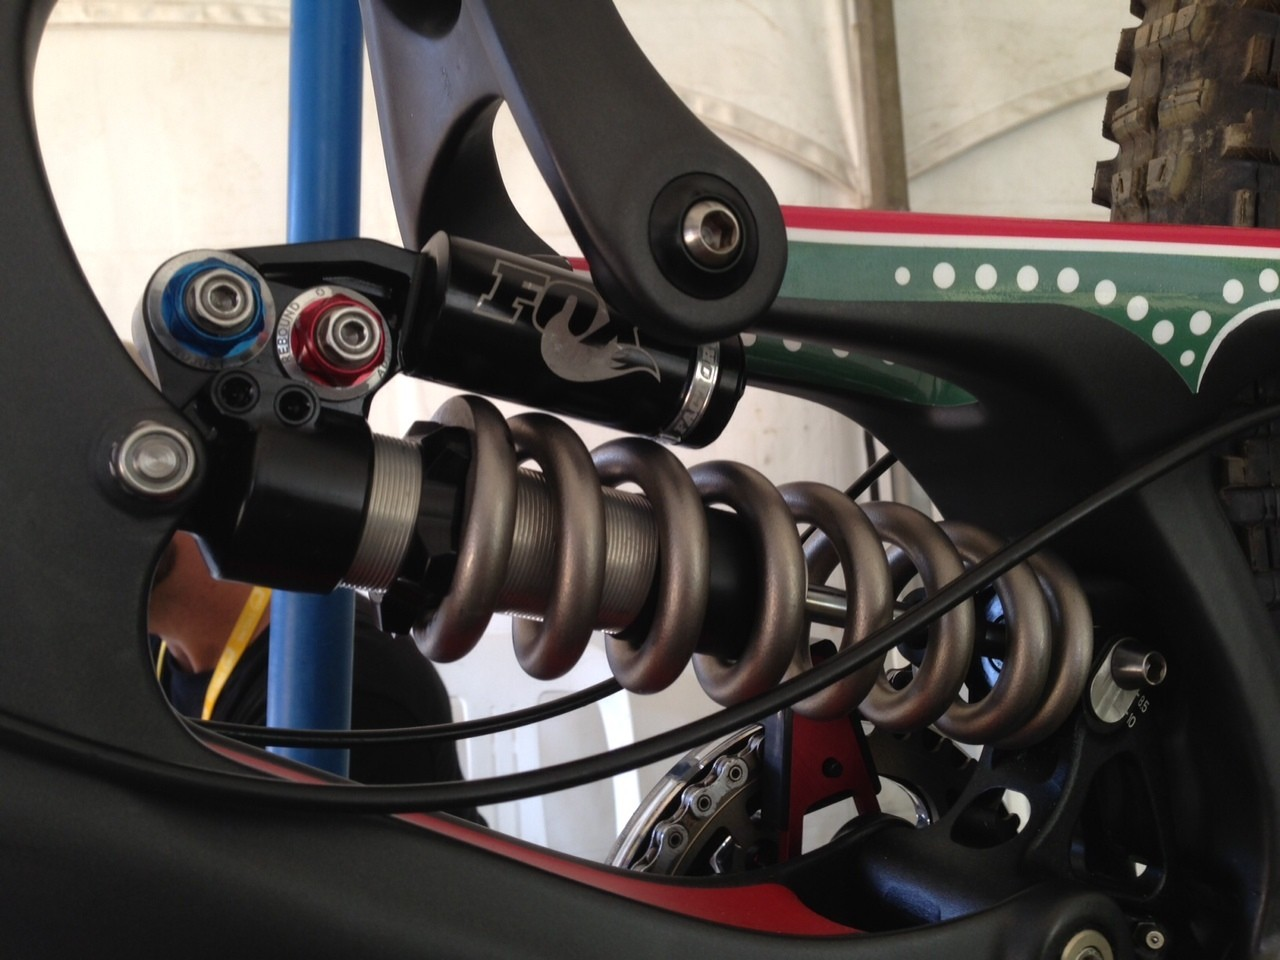 Prototype Fox RAD Coil Shock on Greg Minnaar's World Champs Bike - World Championships Bikes and Gear 2013 - Mountain Biking Pictures - Vital MTB